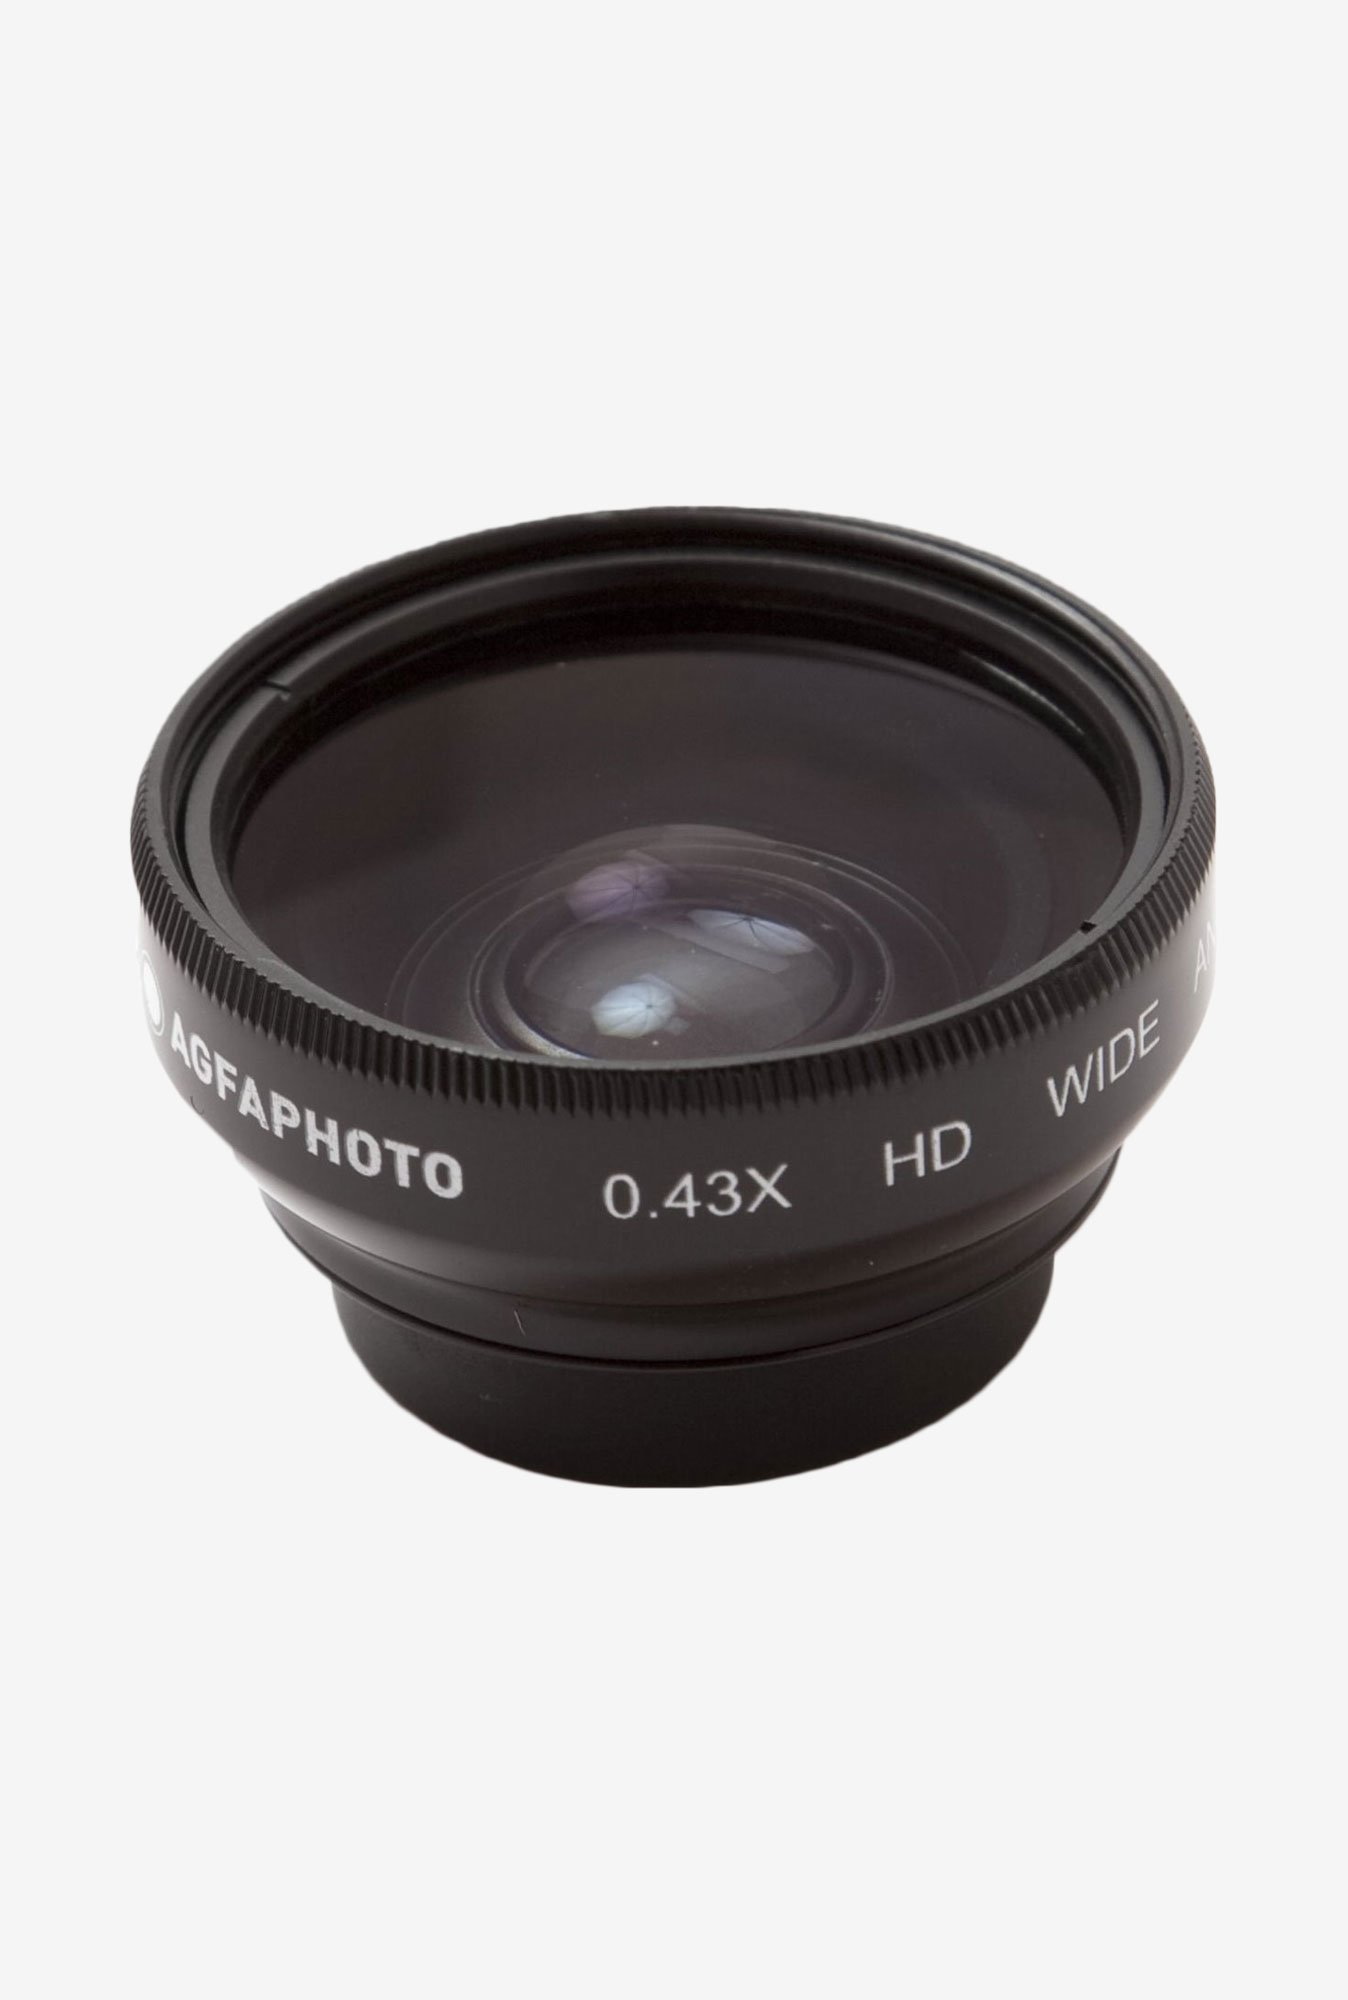 Zeikos Agfa 0.43X Magnetic Wide Angle Lens (Black)